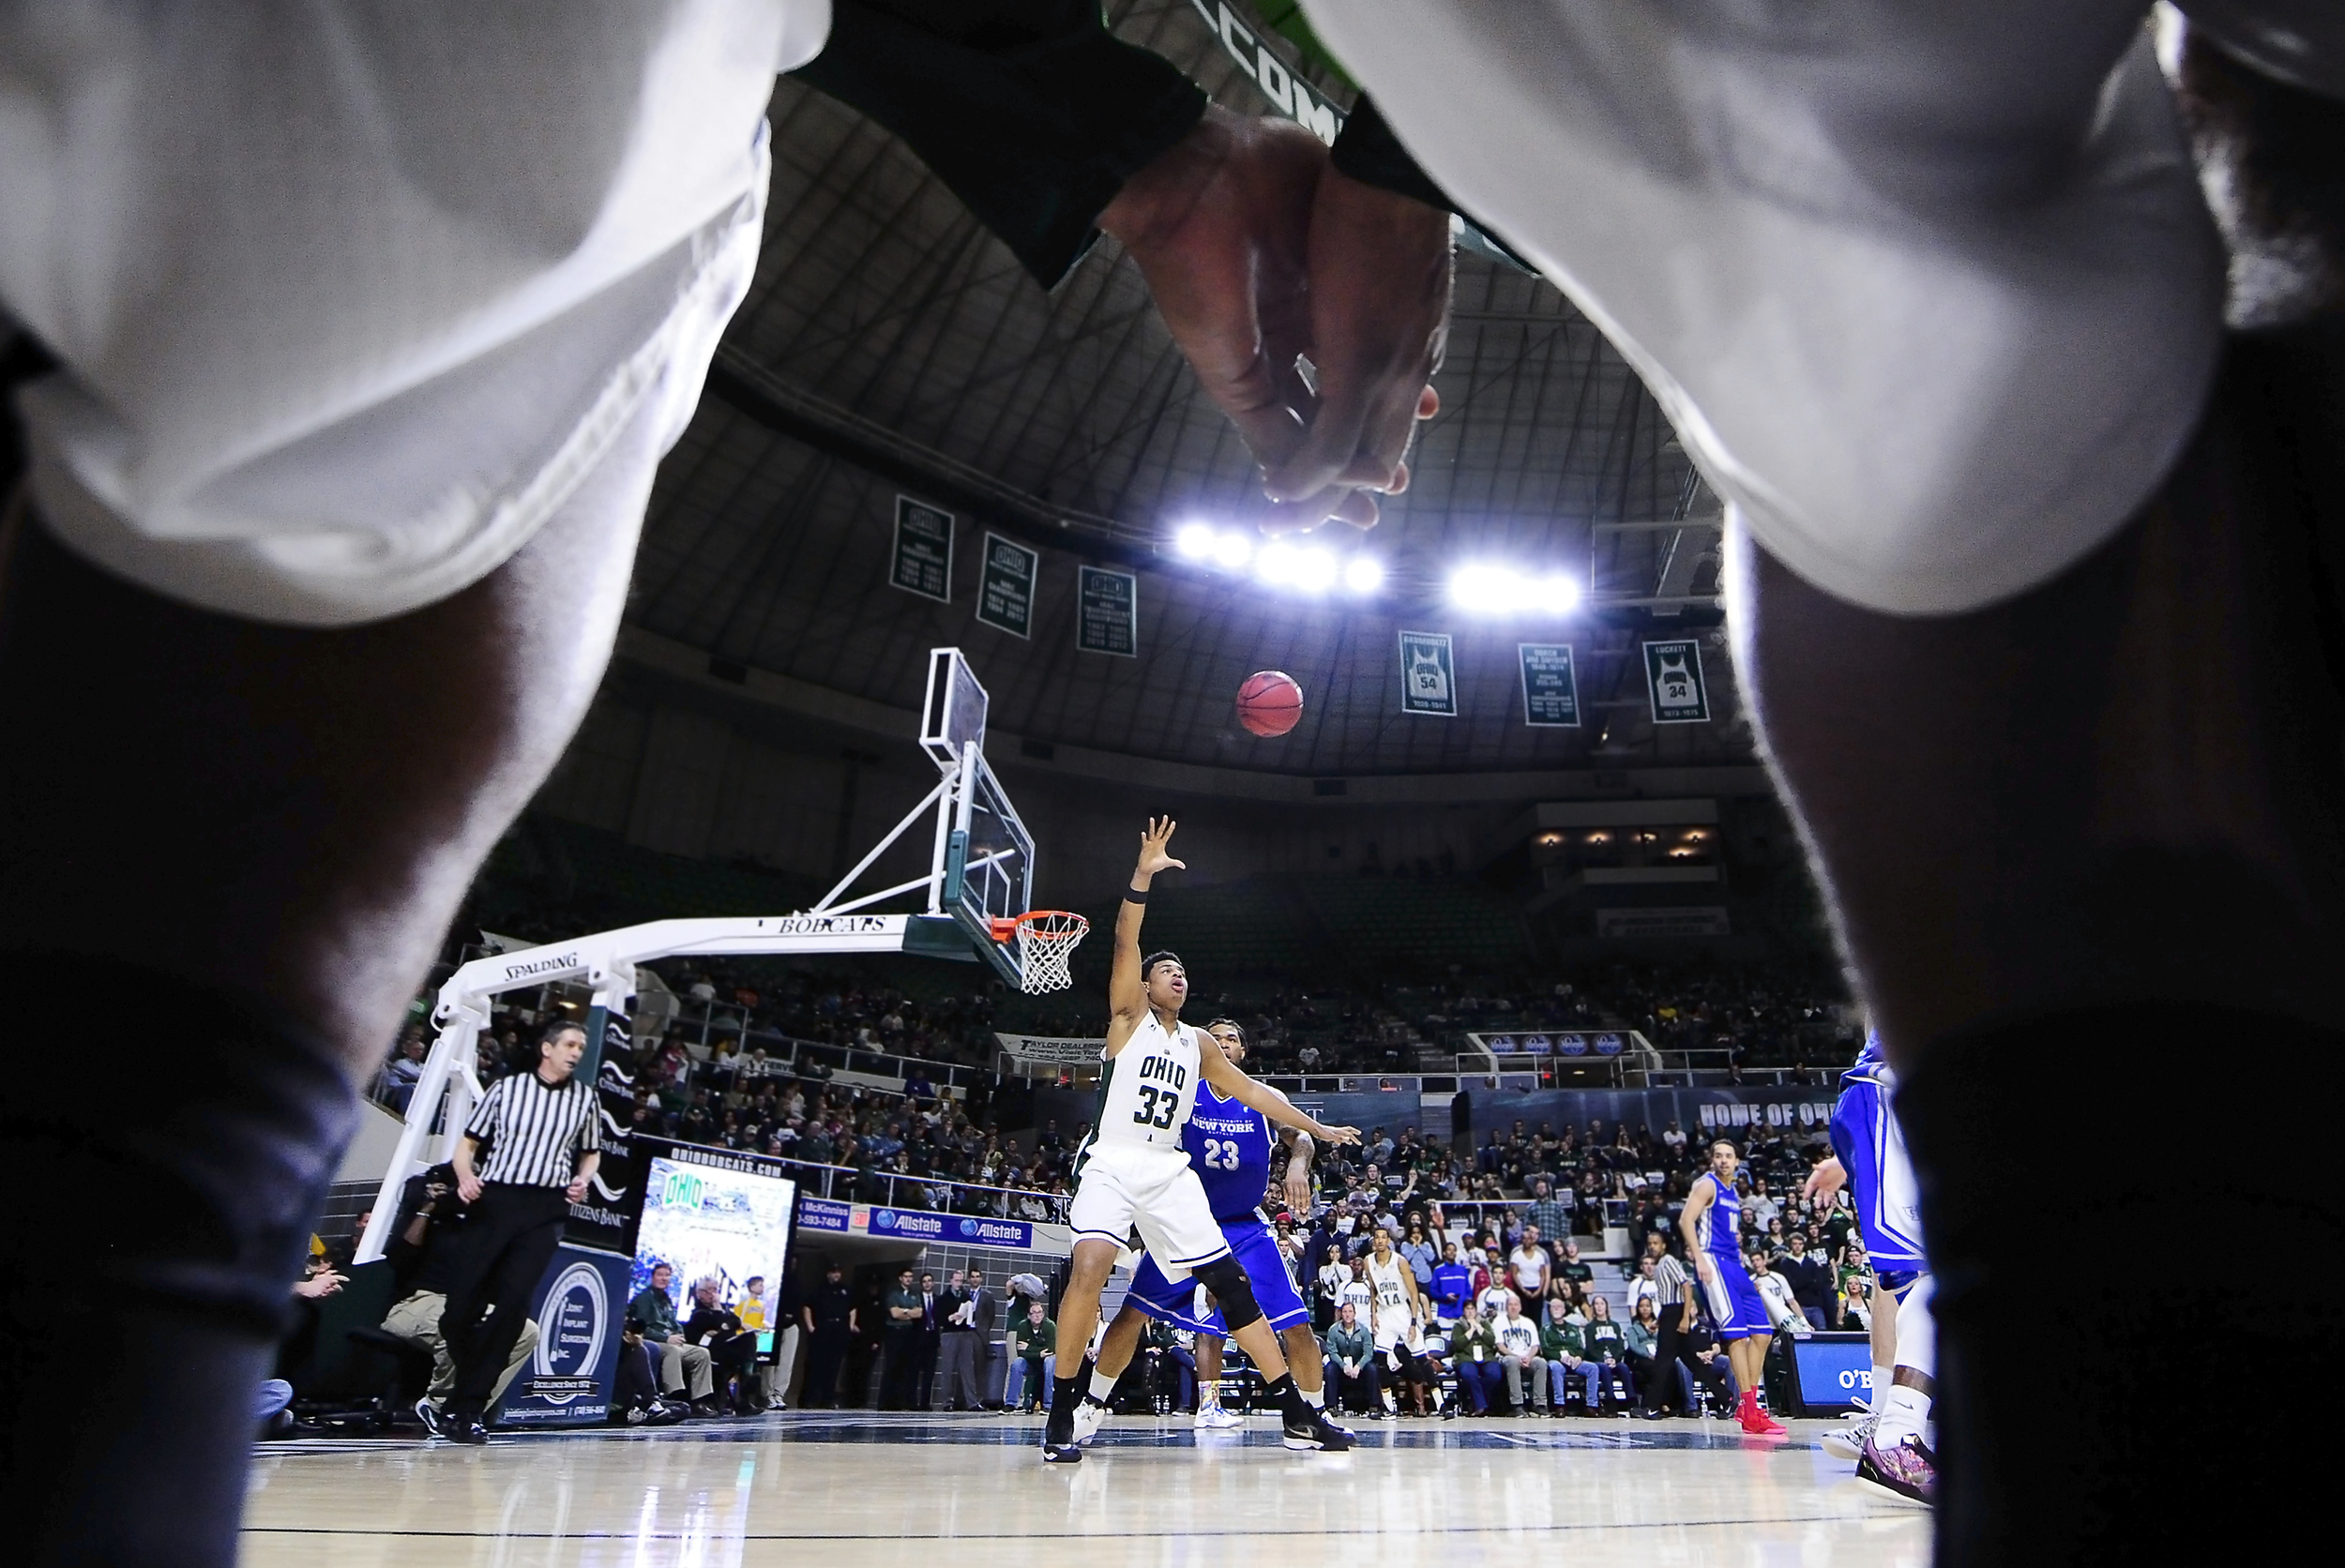 Ohio University center Anthony Campbell reaches for a high pass down under the basket during their game against the University of Buffalo on Jan. 24, 2015 in the Convocation Center in Athens, Ohio. The Bobcats would end up winning 63-61.